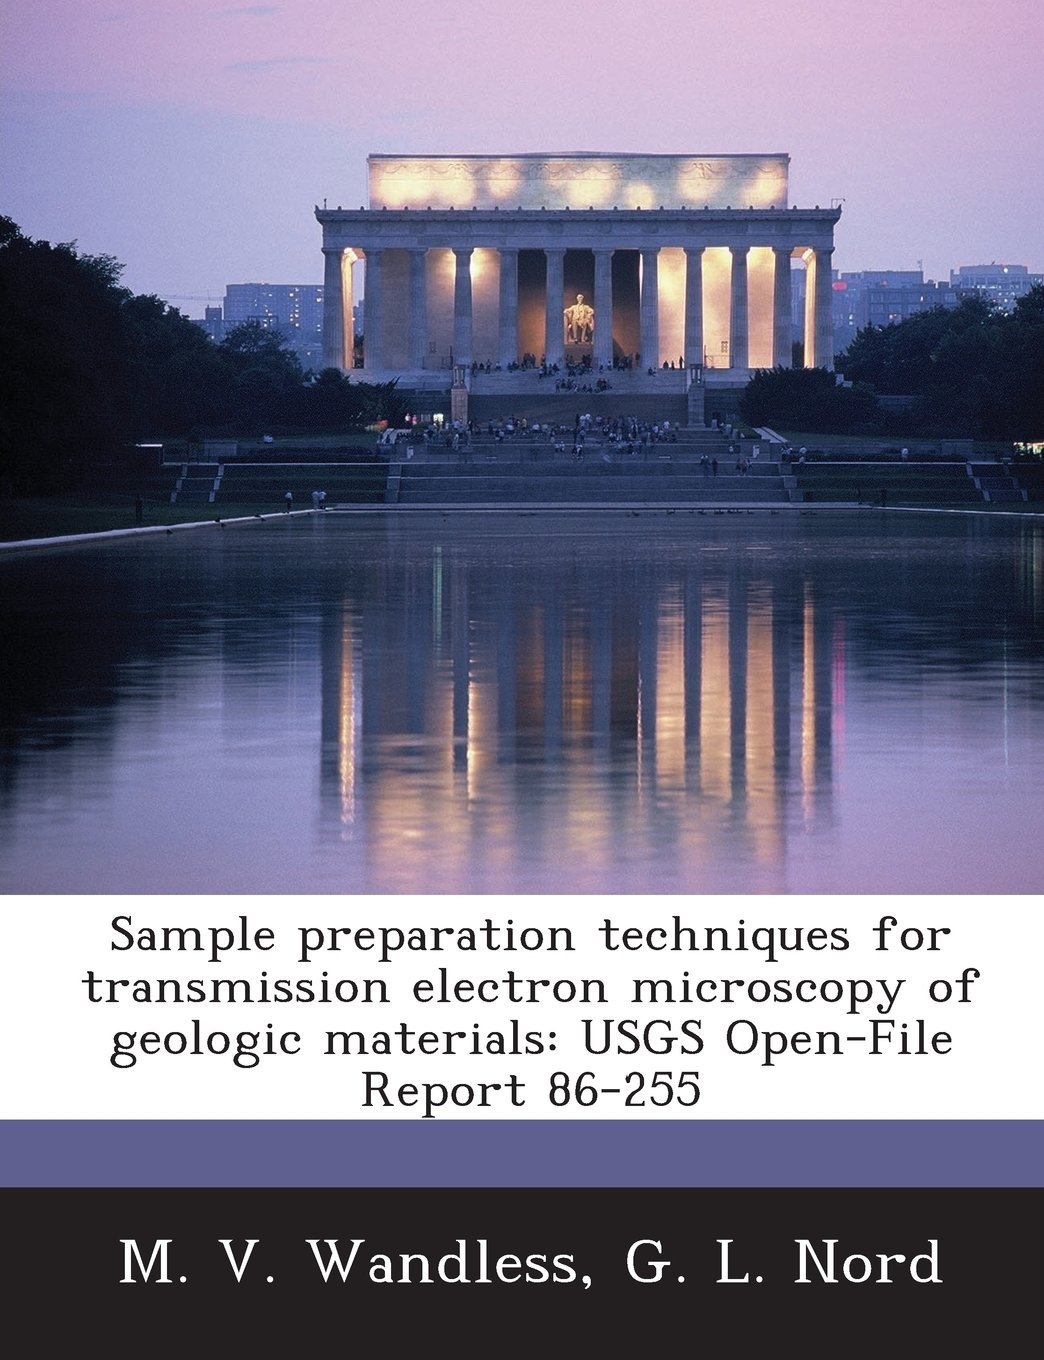 Download Sample preparation techniques for transmission electron microscopy of geologic materials: USGS Open-File Report 86-255 pdf